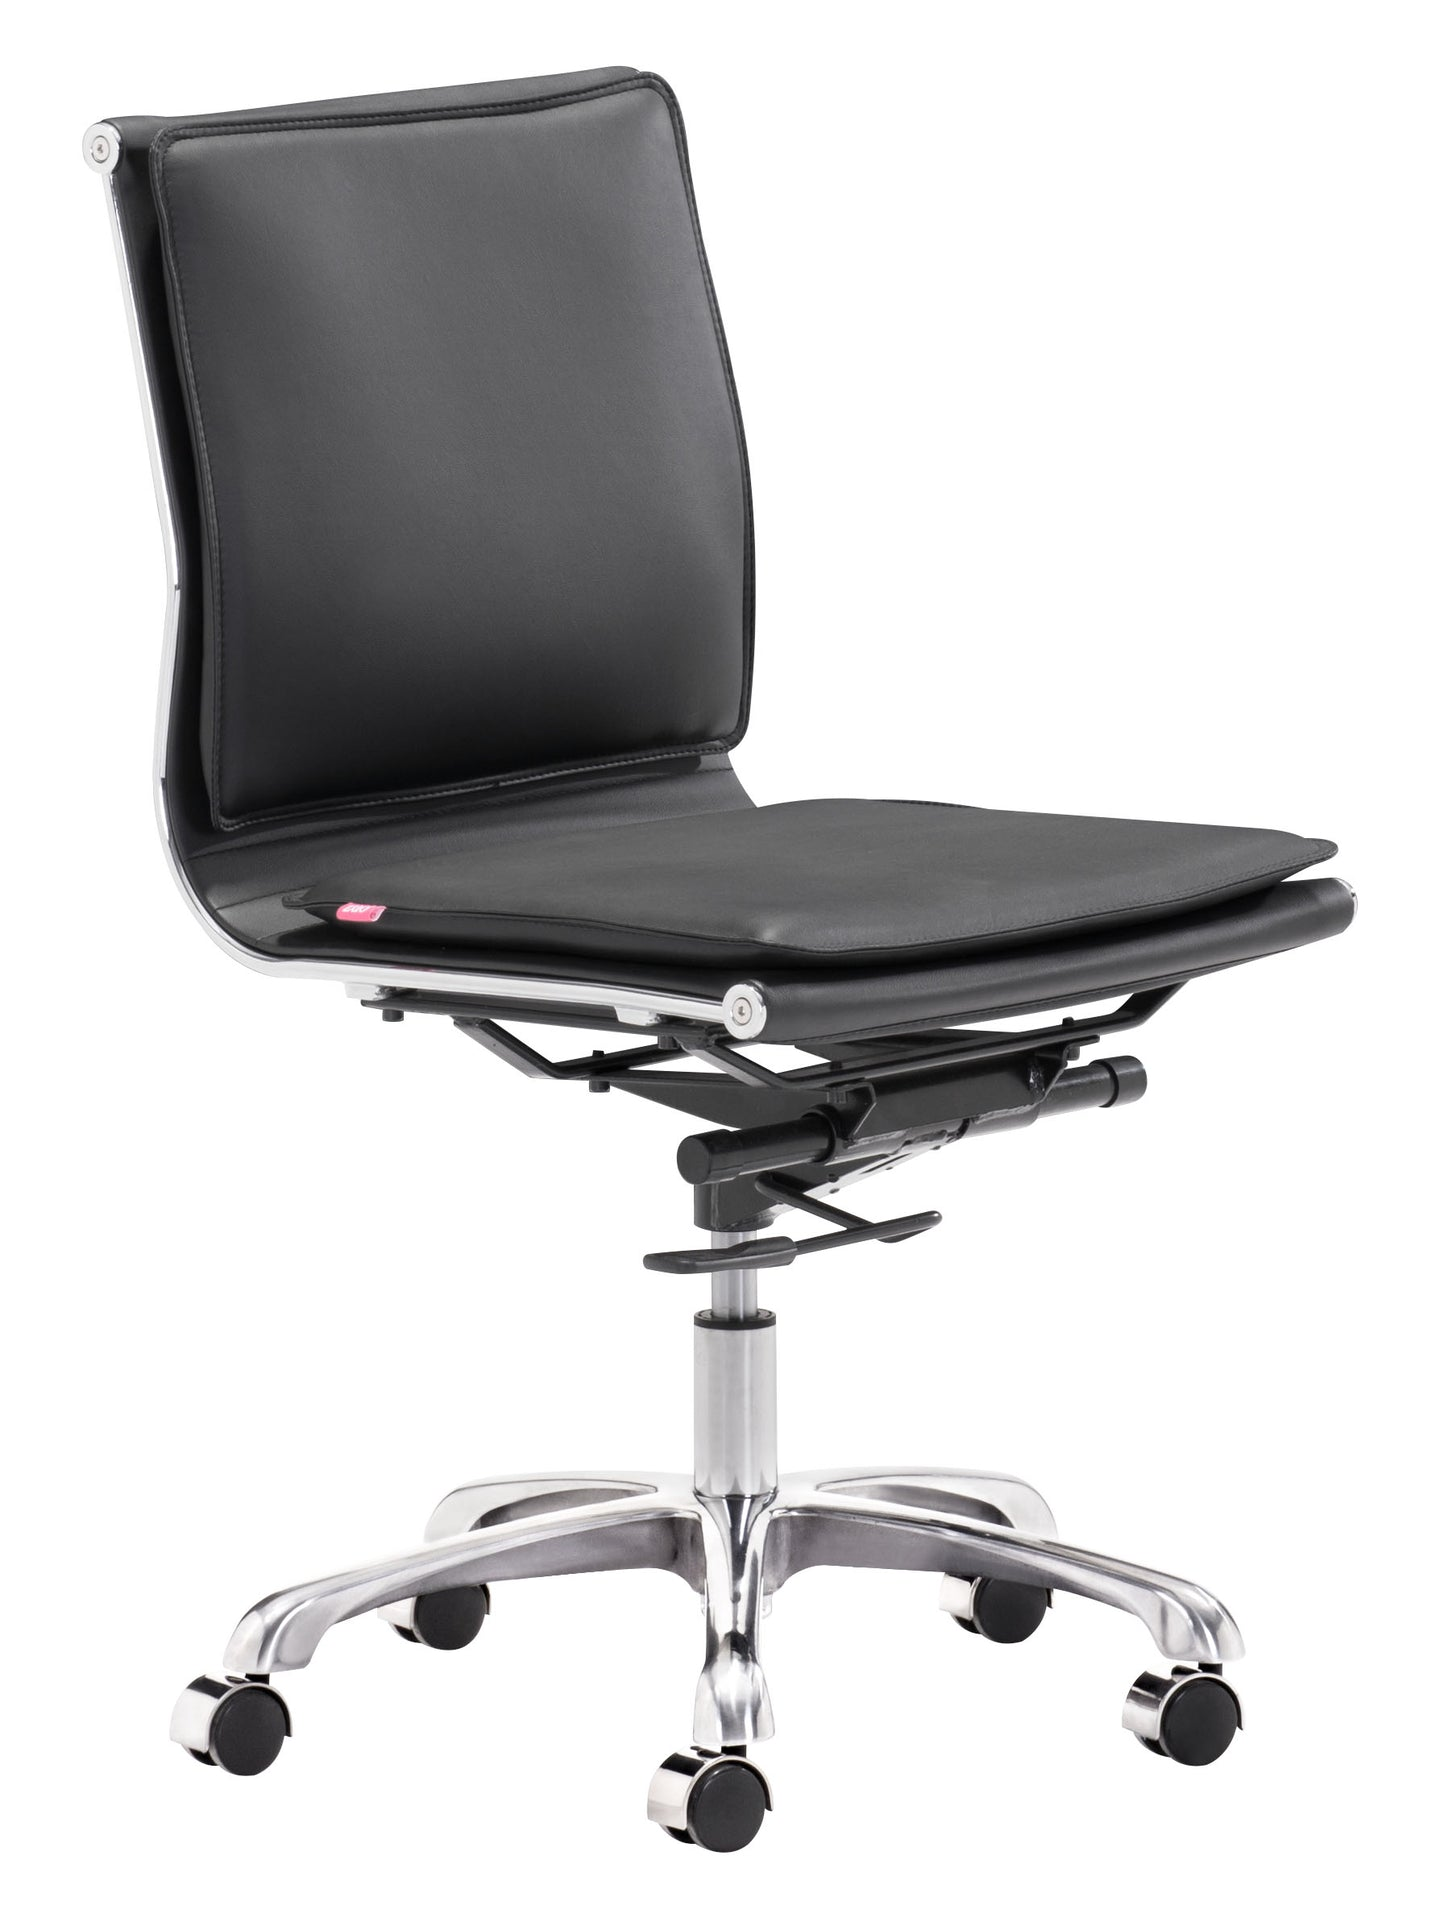 Lider Plus Armless Office Chair Black - Office